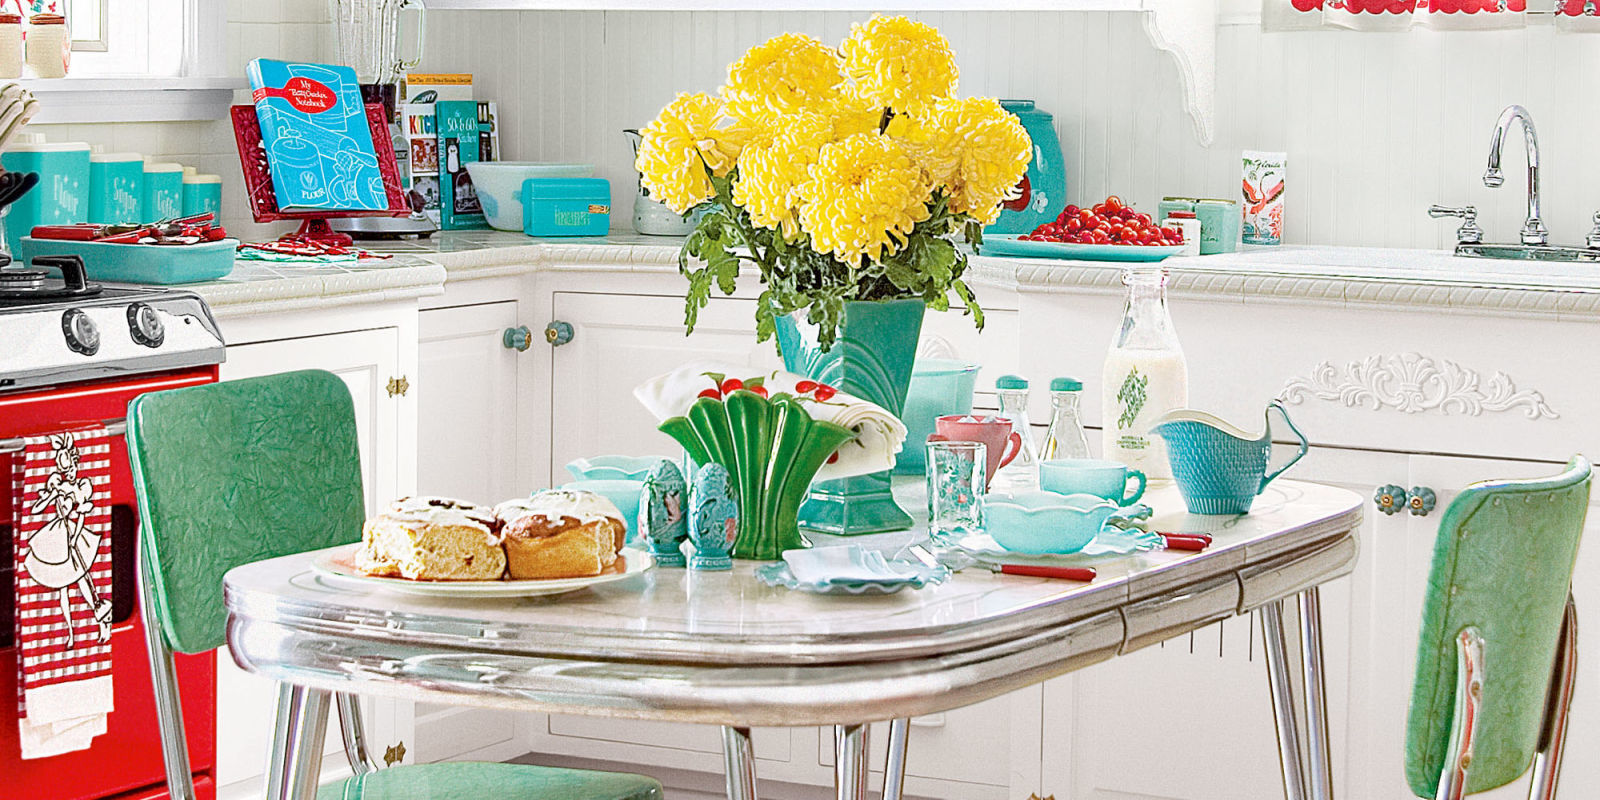 11 Retro Diner Decor Ideas For Your Kitchen Vintage